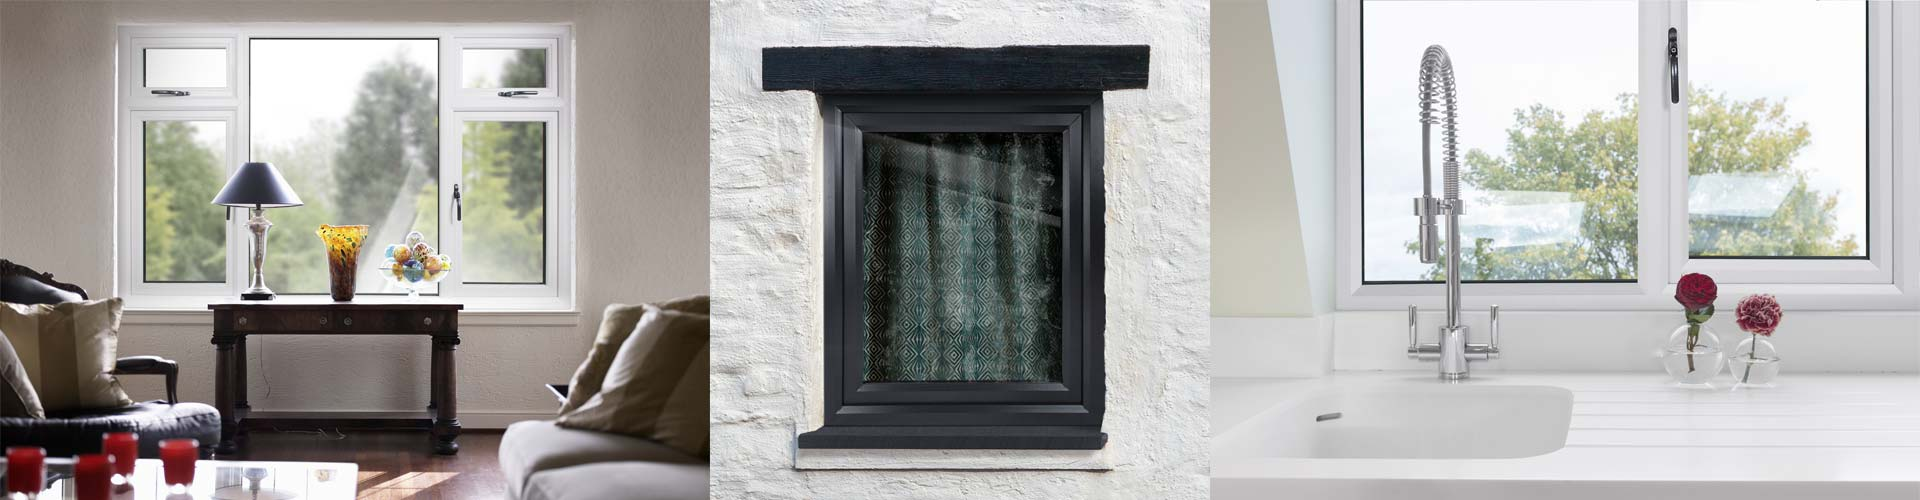 Triple Glazed & Double Glazed uPVC Windows Aberdeen, Aberdeenshire & North East Scotland